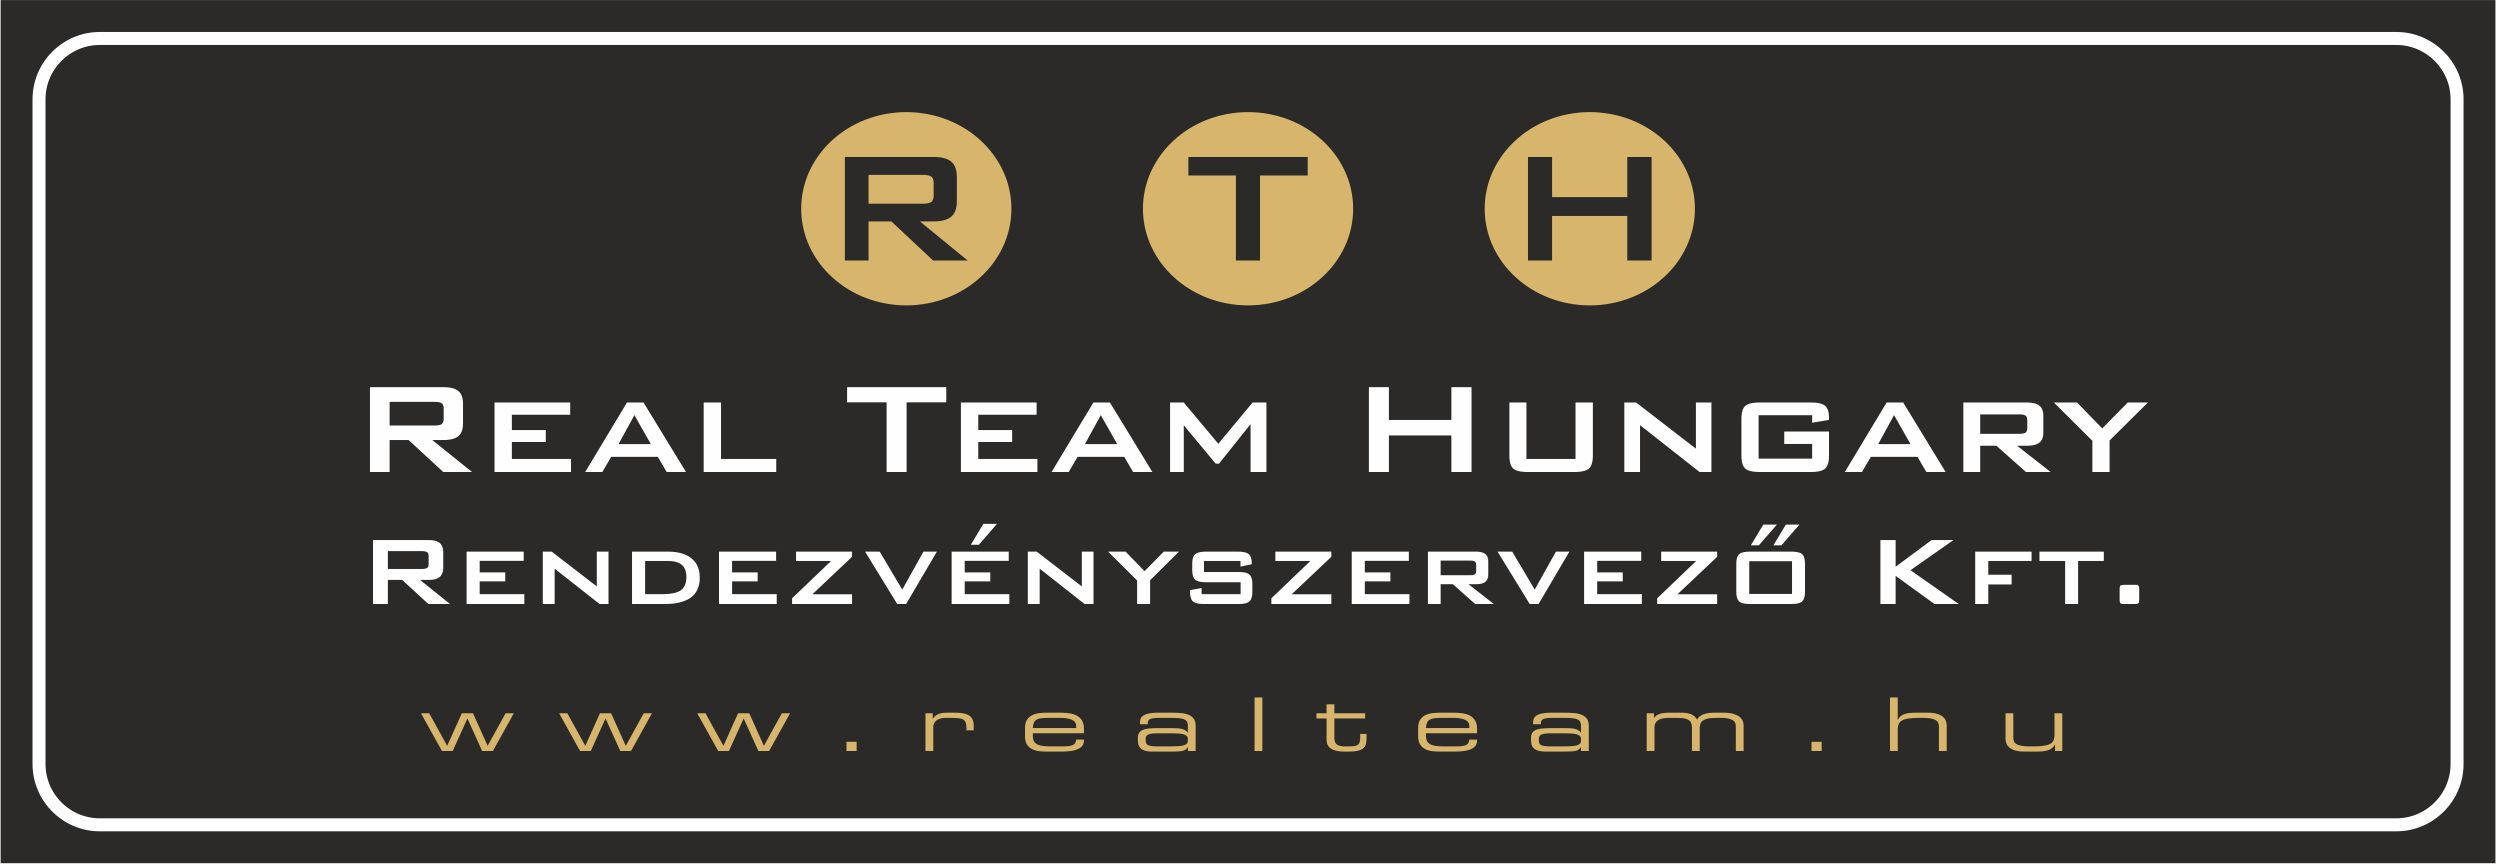 Real Team Hungary Kft.